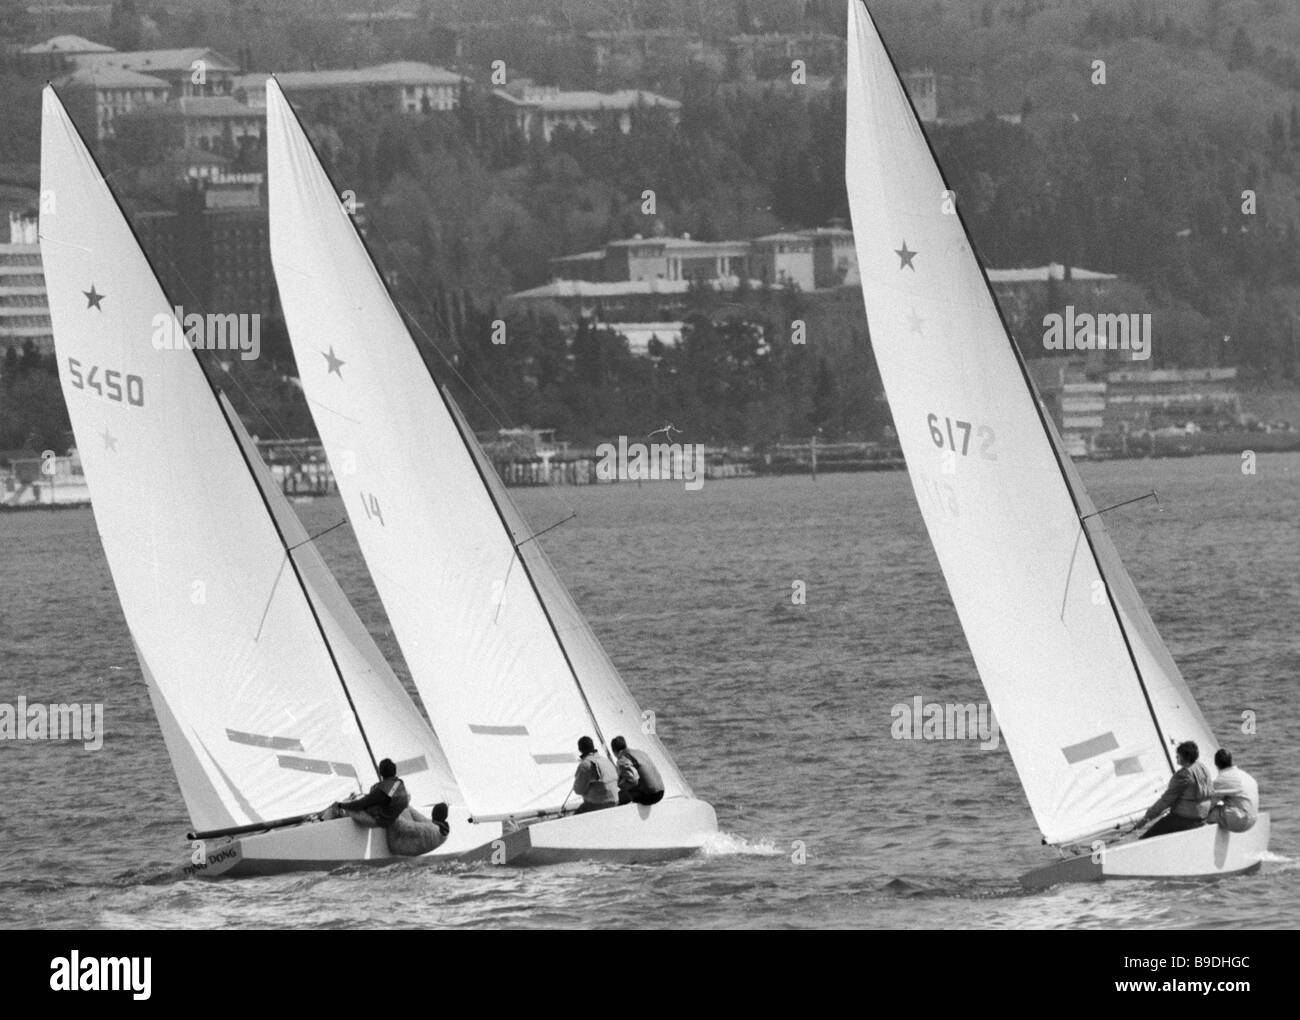 Yachting race in the Black Sea - Stock Image